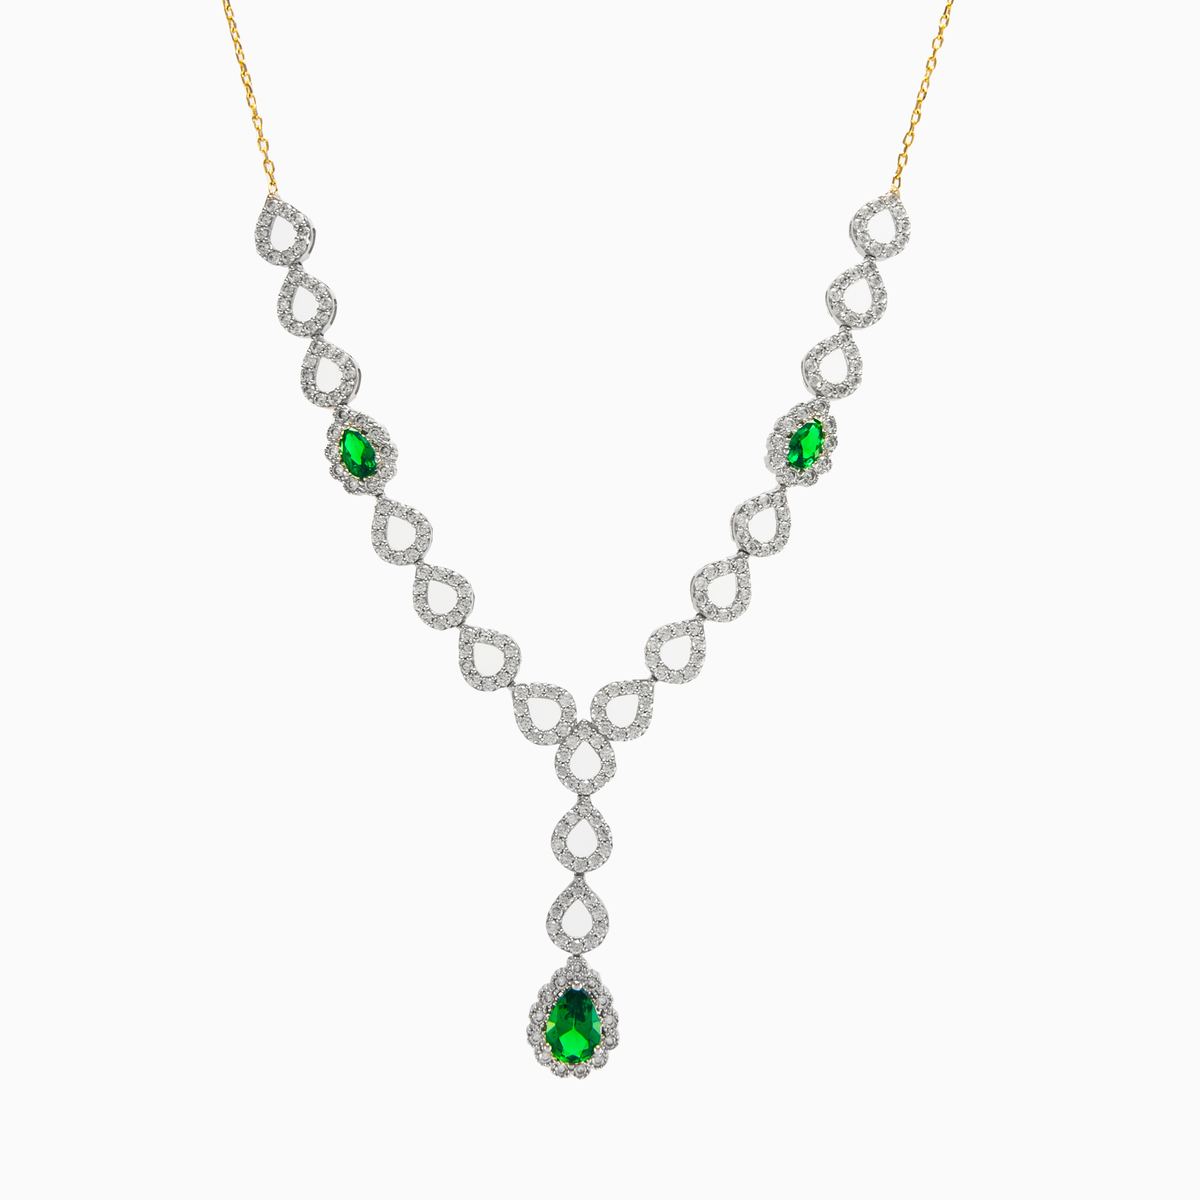 a756ba85308 Unique necklace in 14k yellow and white gold with crystals and green ...